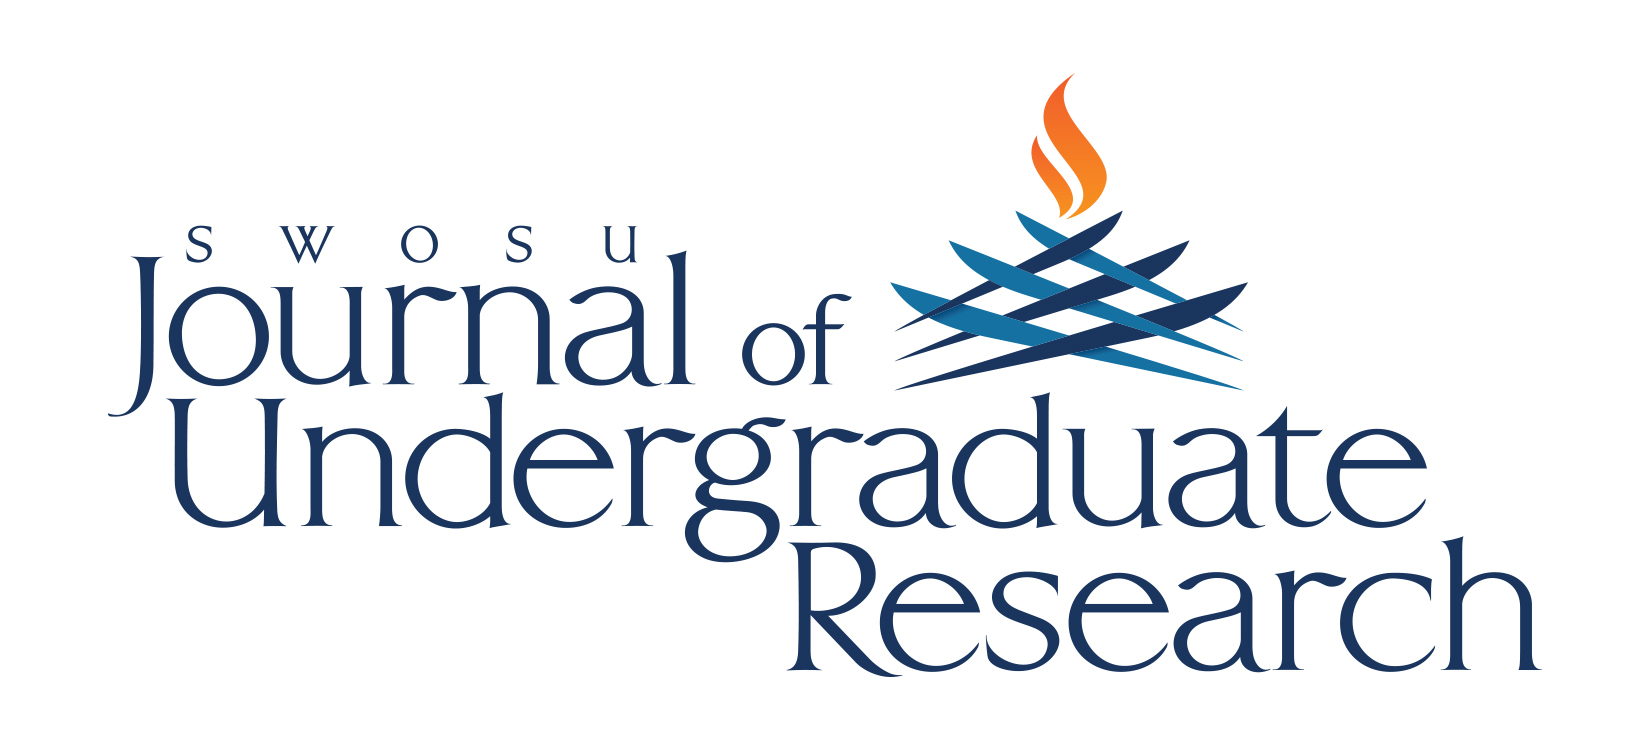 SWOSU Journal of Undergraduate Research